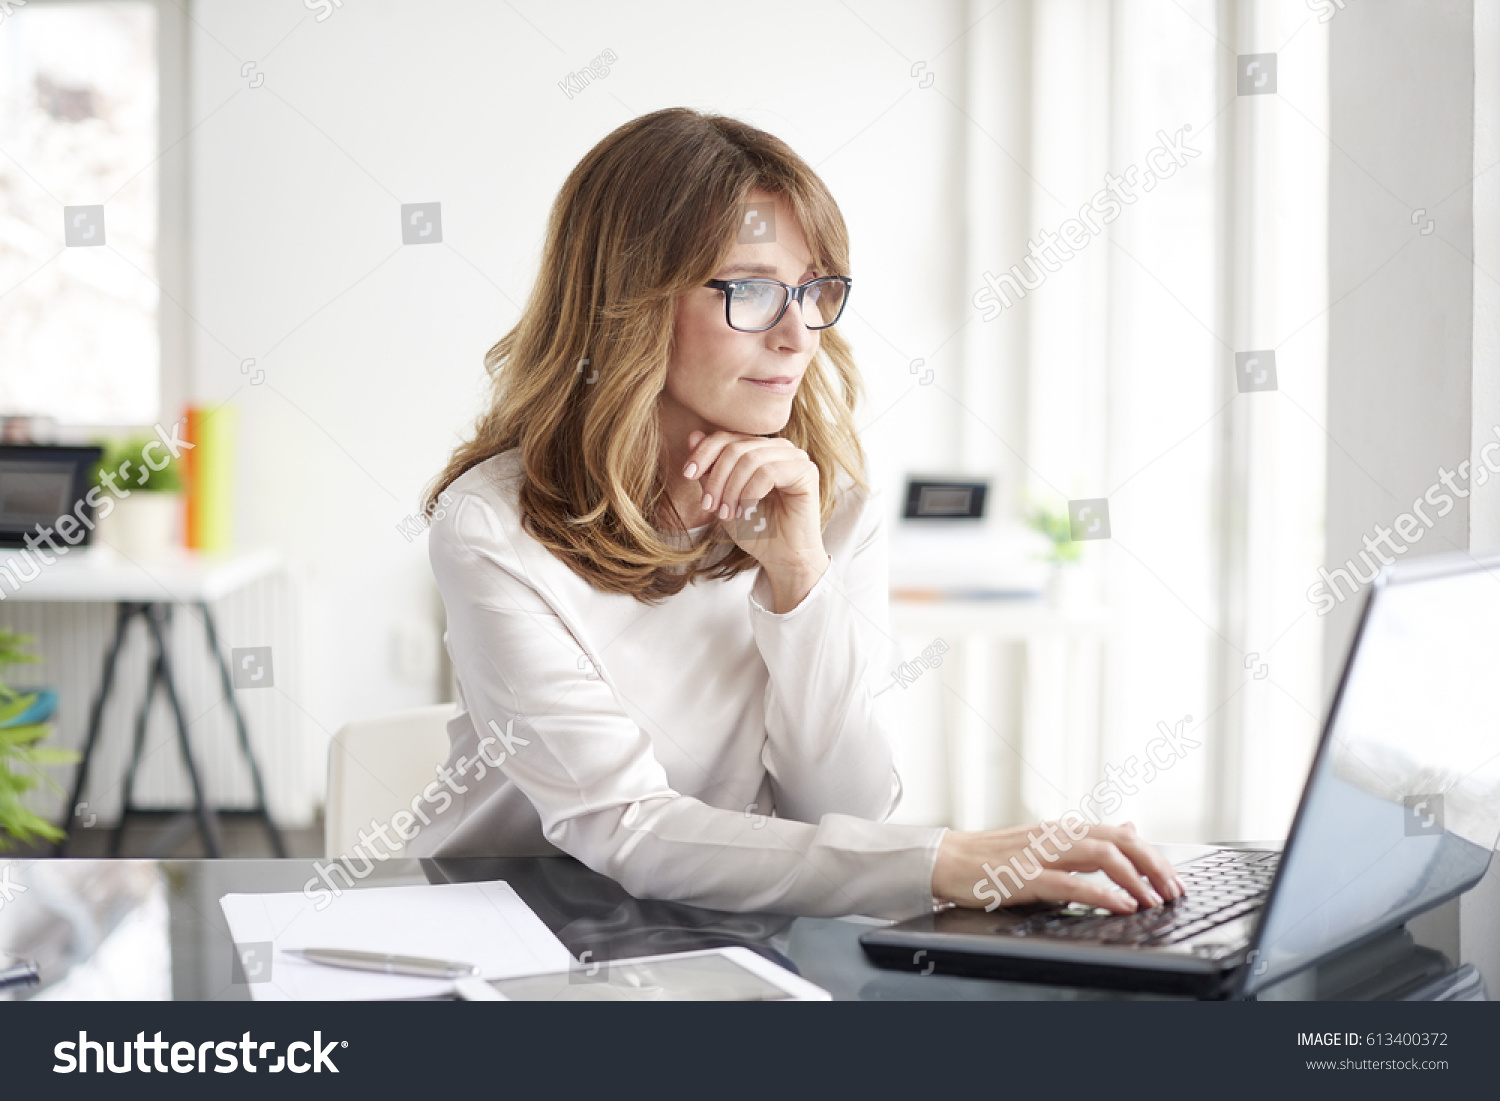 Shot of an attractive mature businesswoman working on laptop in her workstation. #613400372